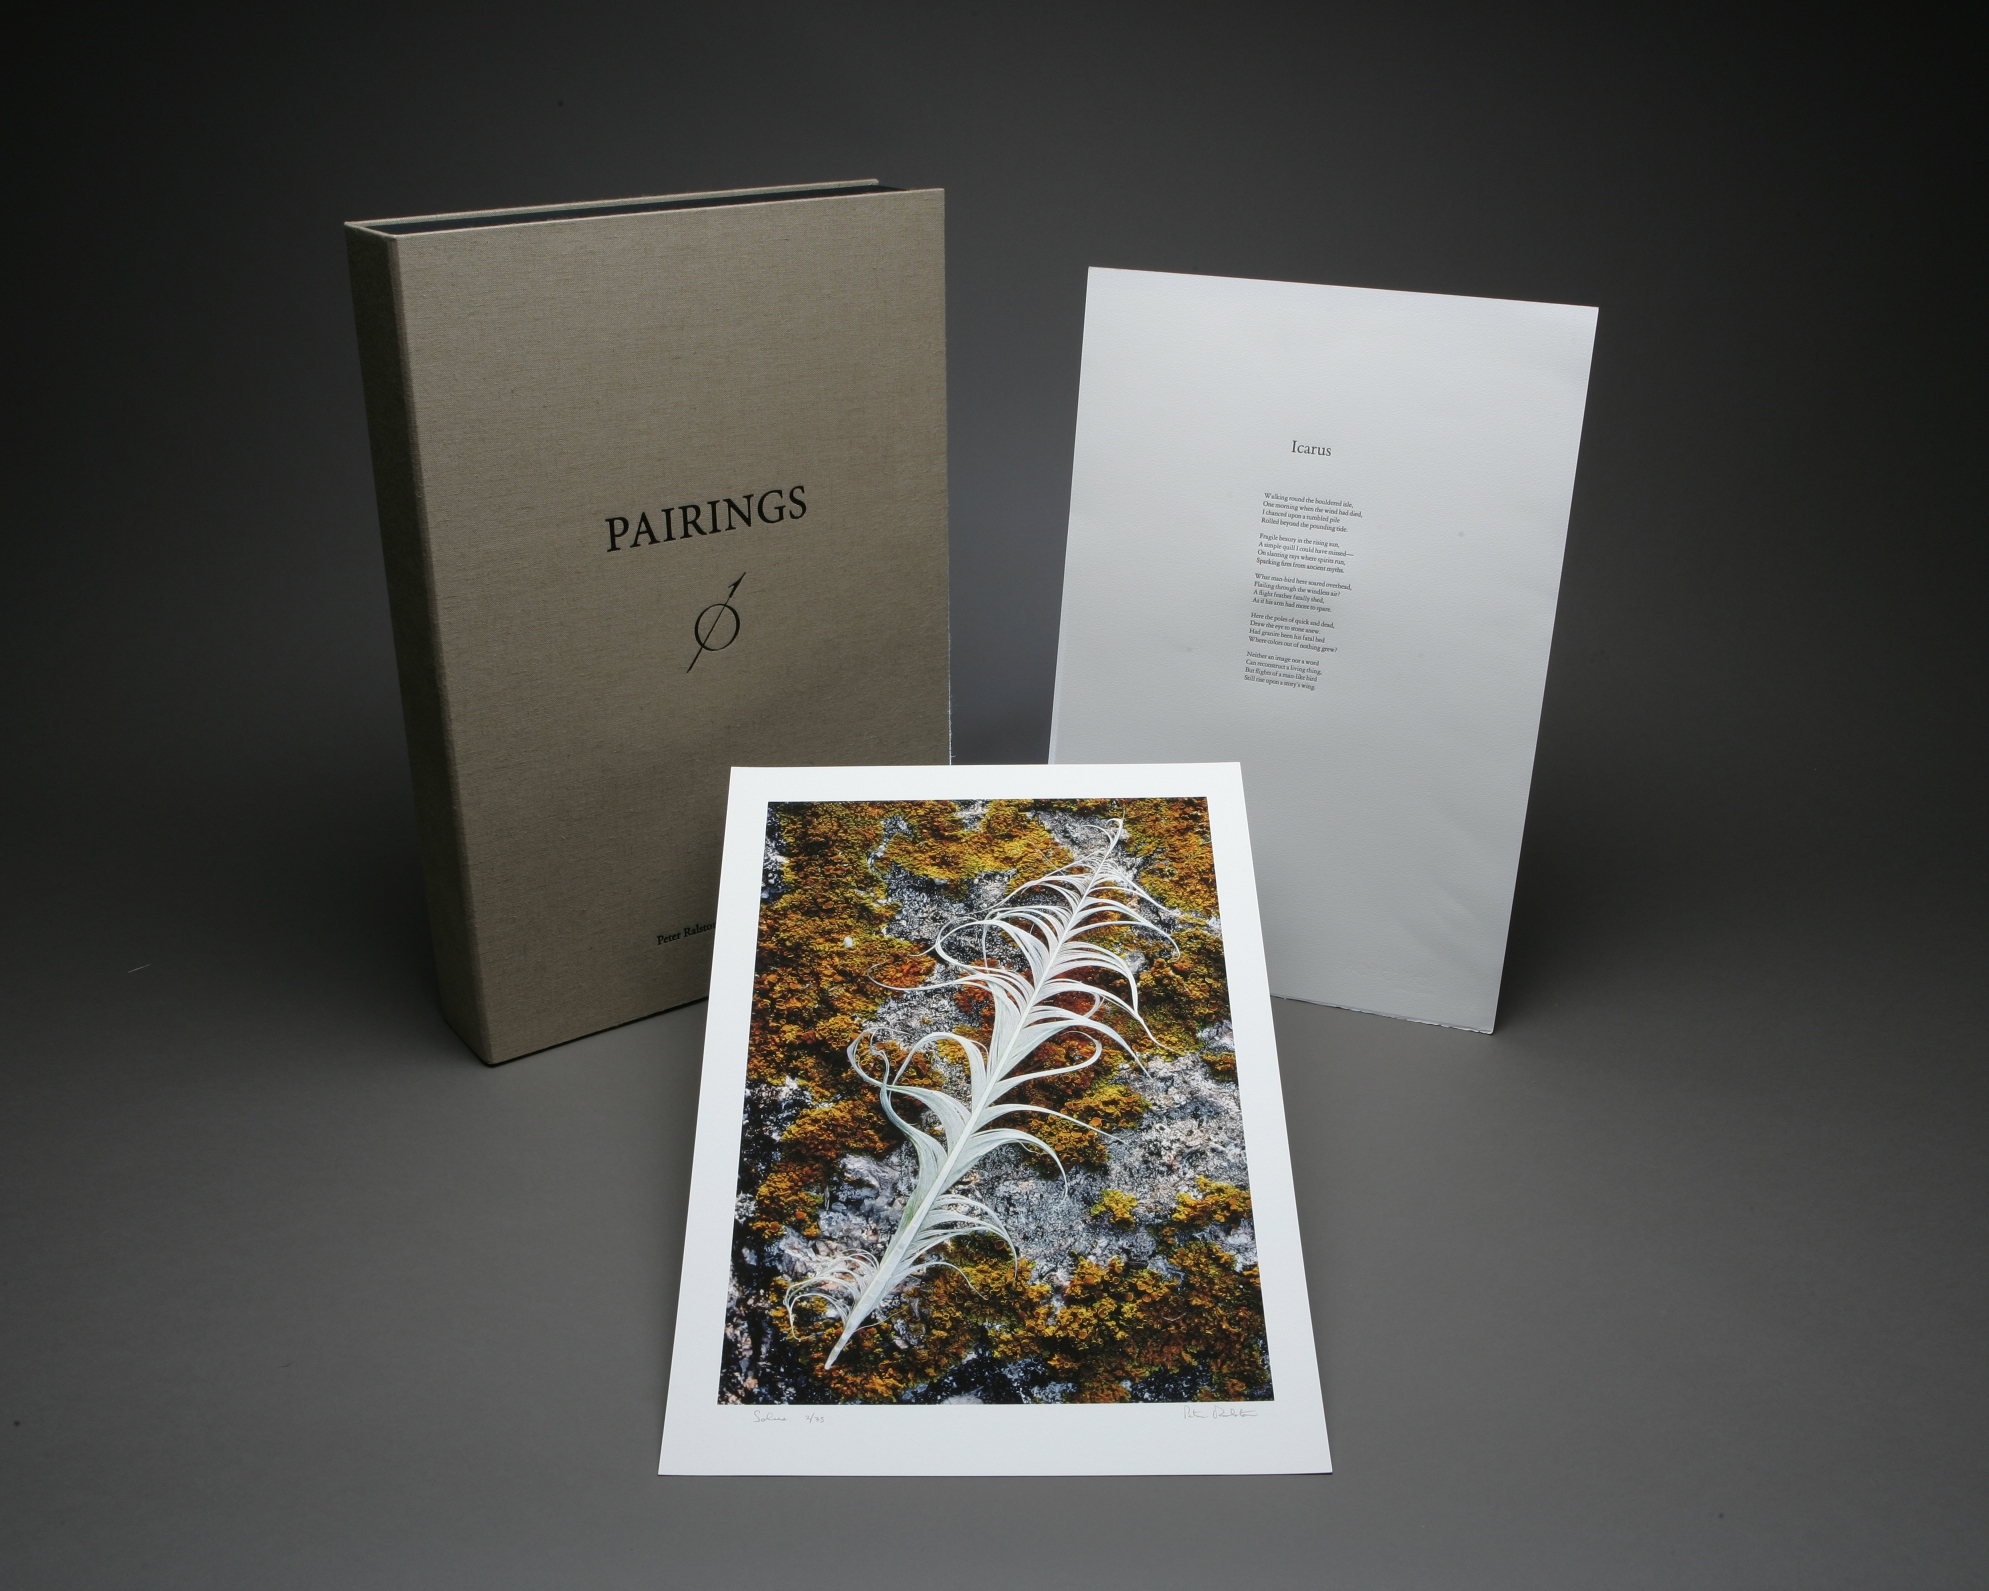 Portfolios and Matted Sets - The Master Prints | Sightings | Pairings are Limited Edition Boxed Sets